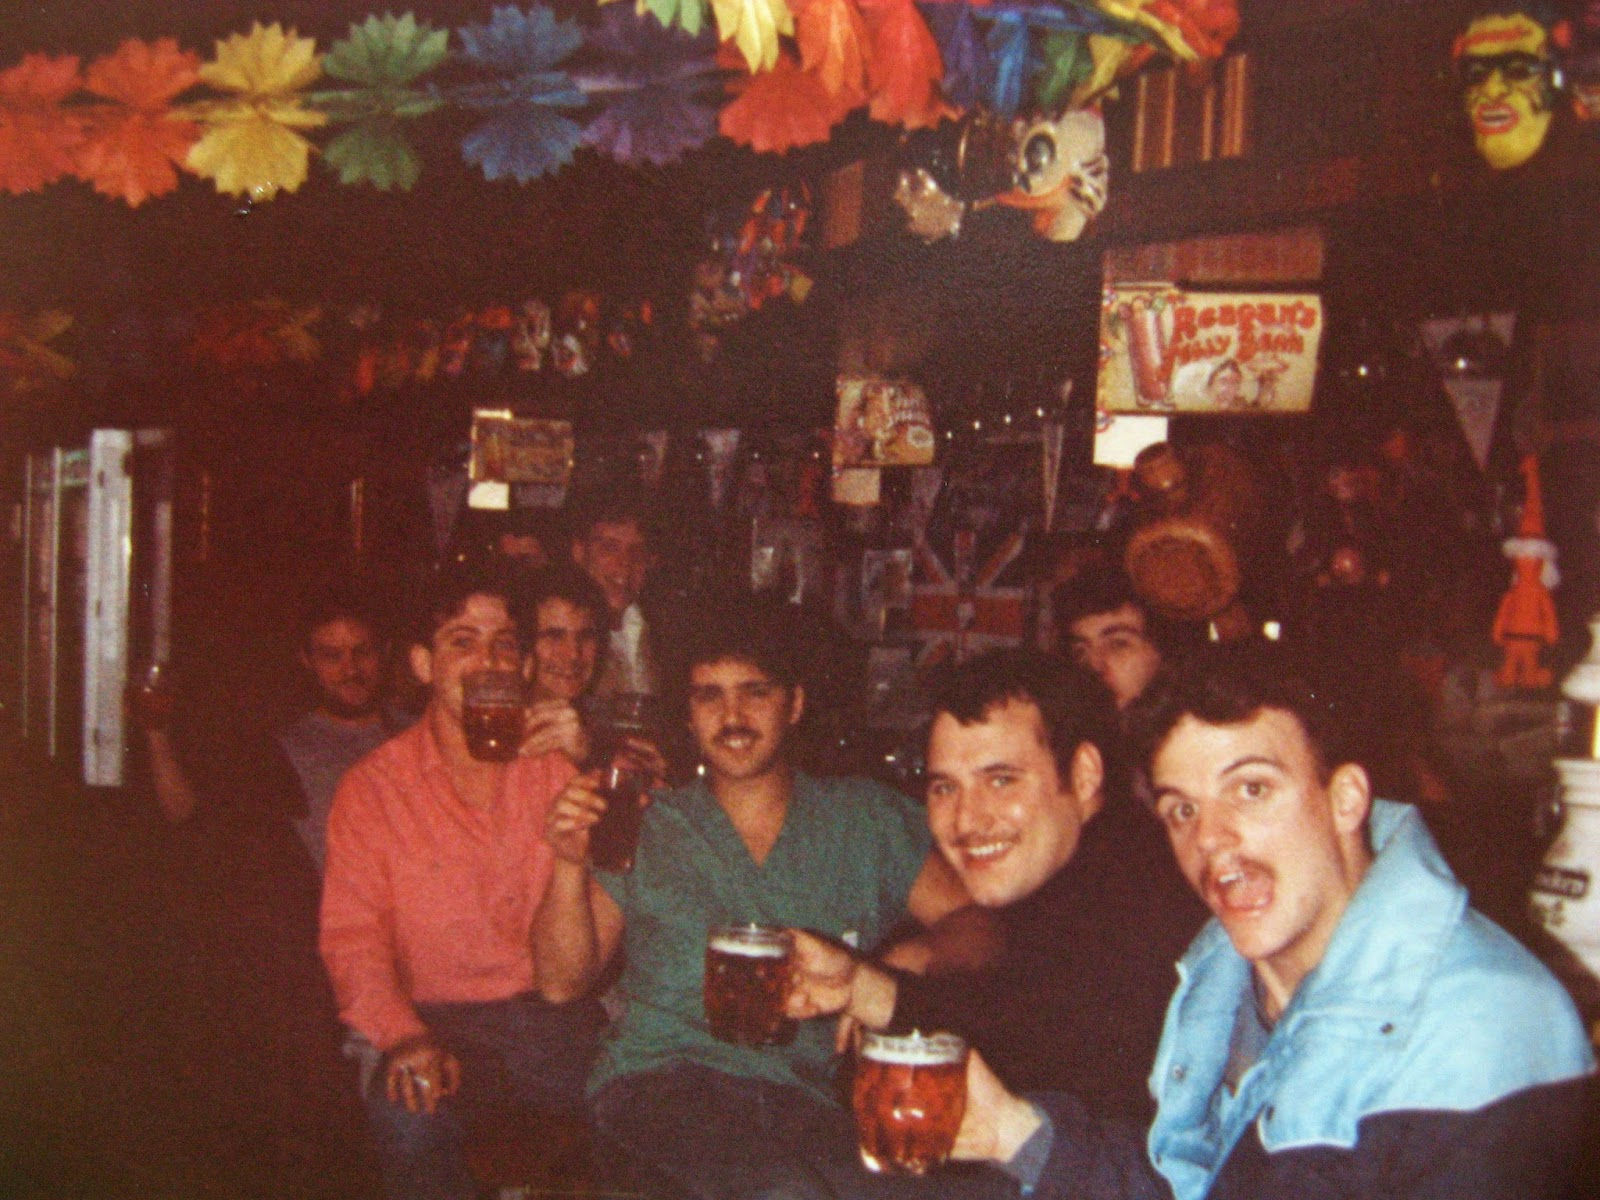 Aaaahhhh... the first drink!! February 1983 Palma, Spain